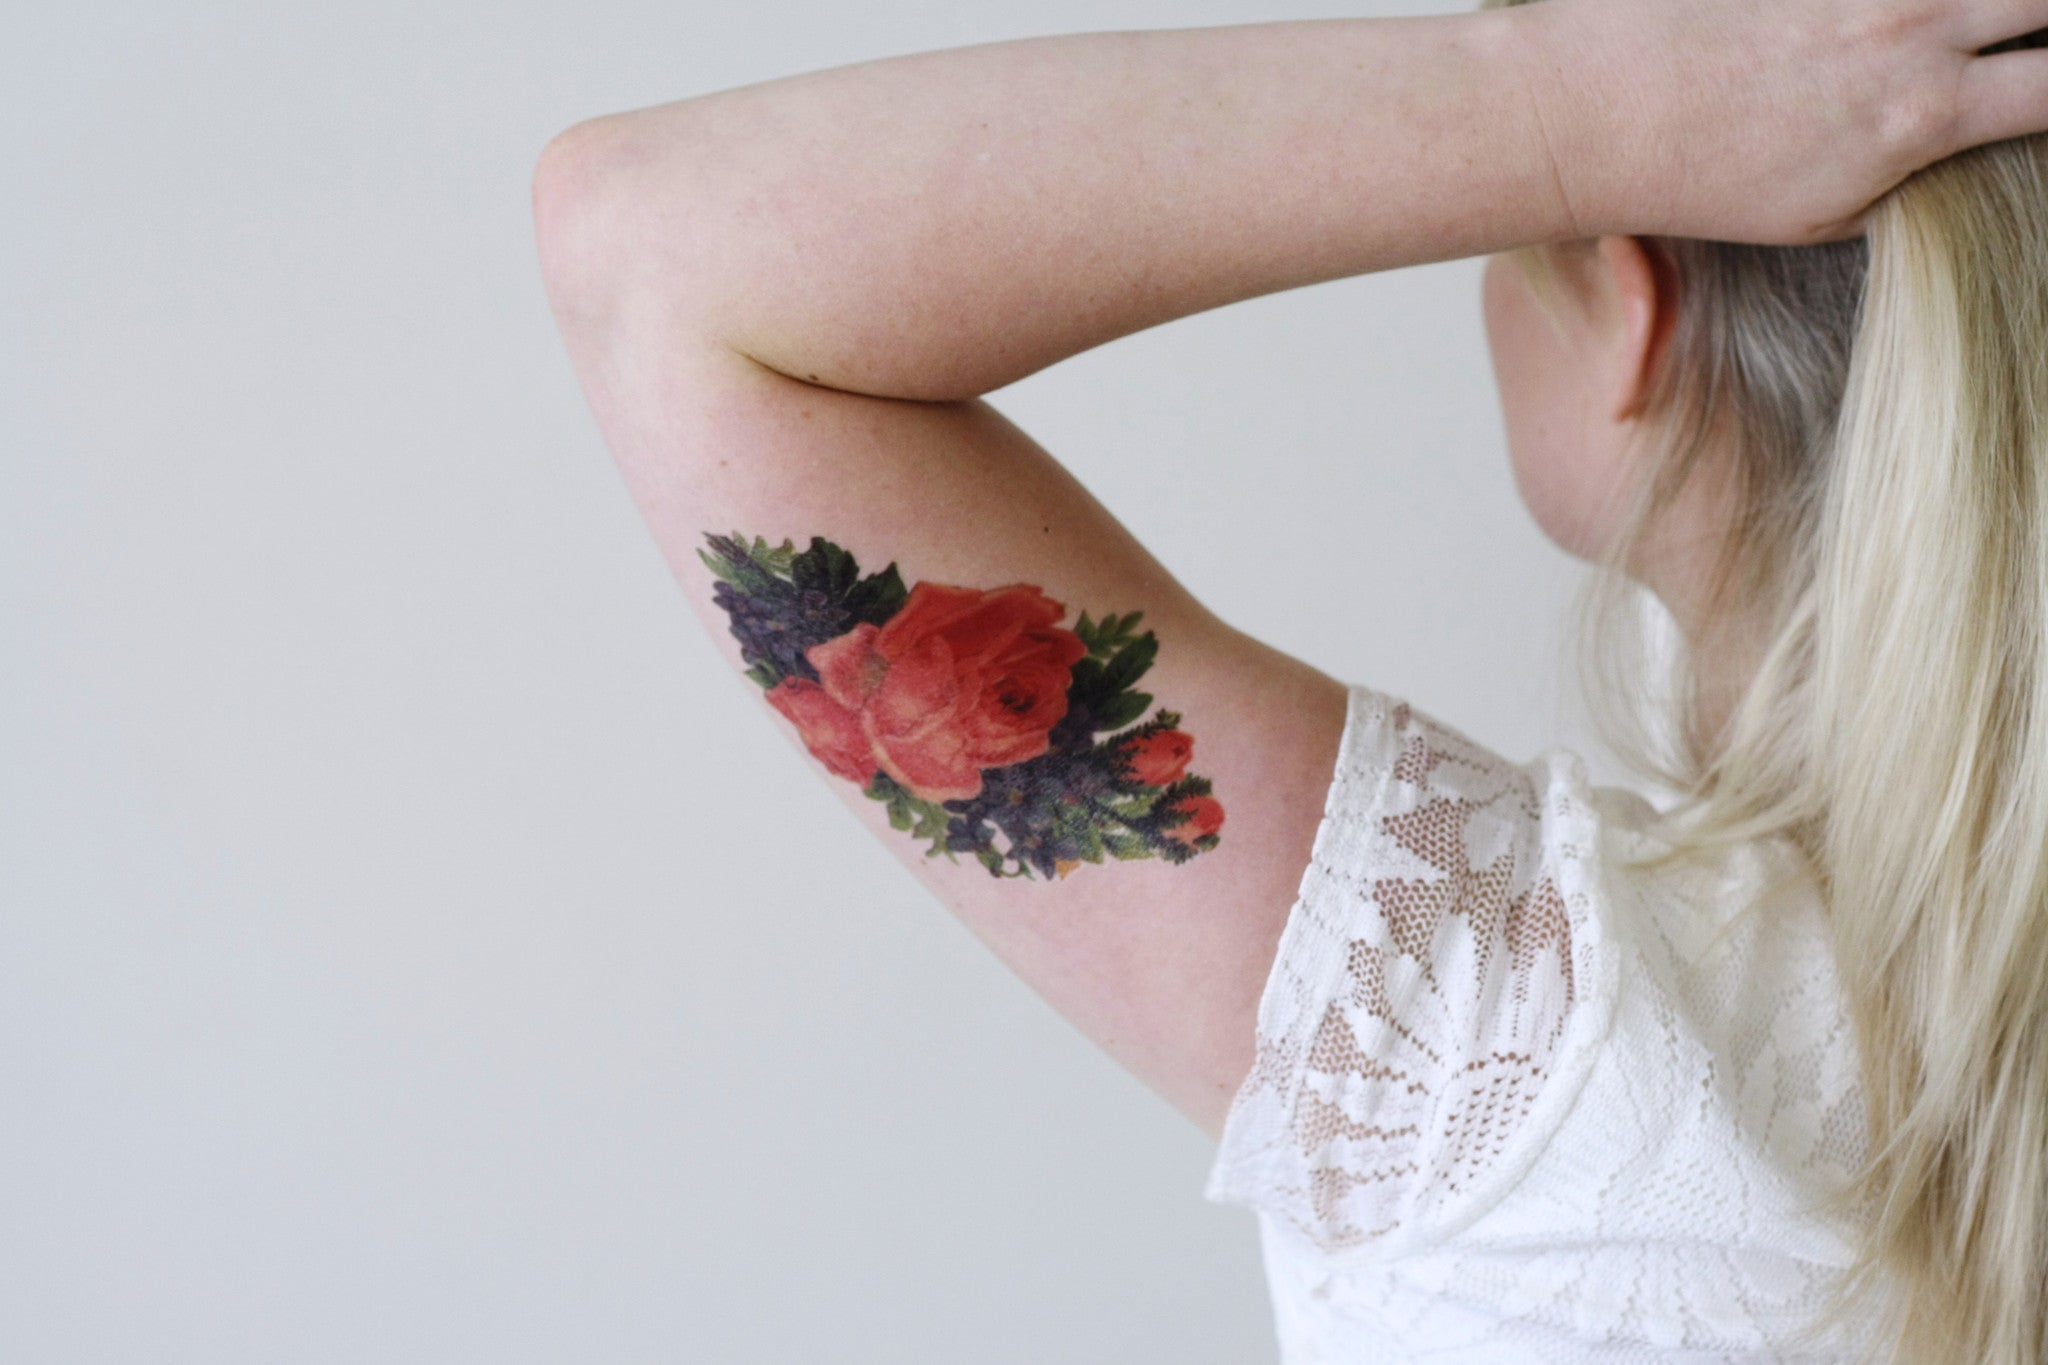 Large Pink Rose Temporary Tattoo Temporary Tattoos By Tattoorary